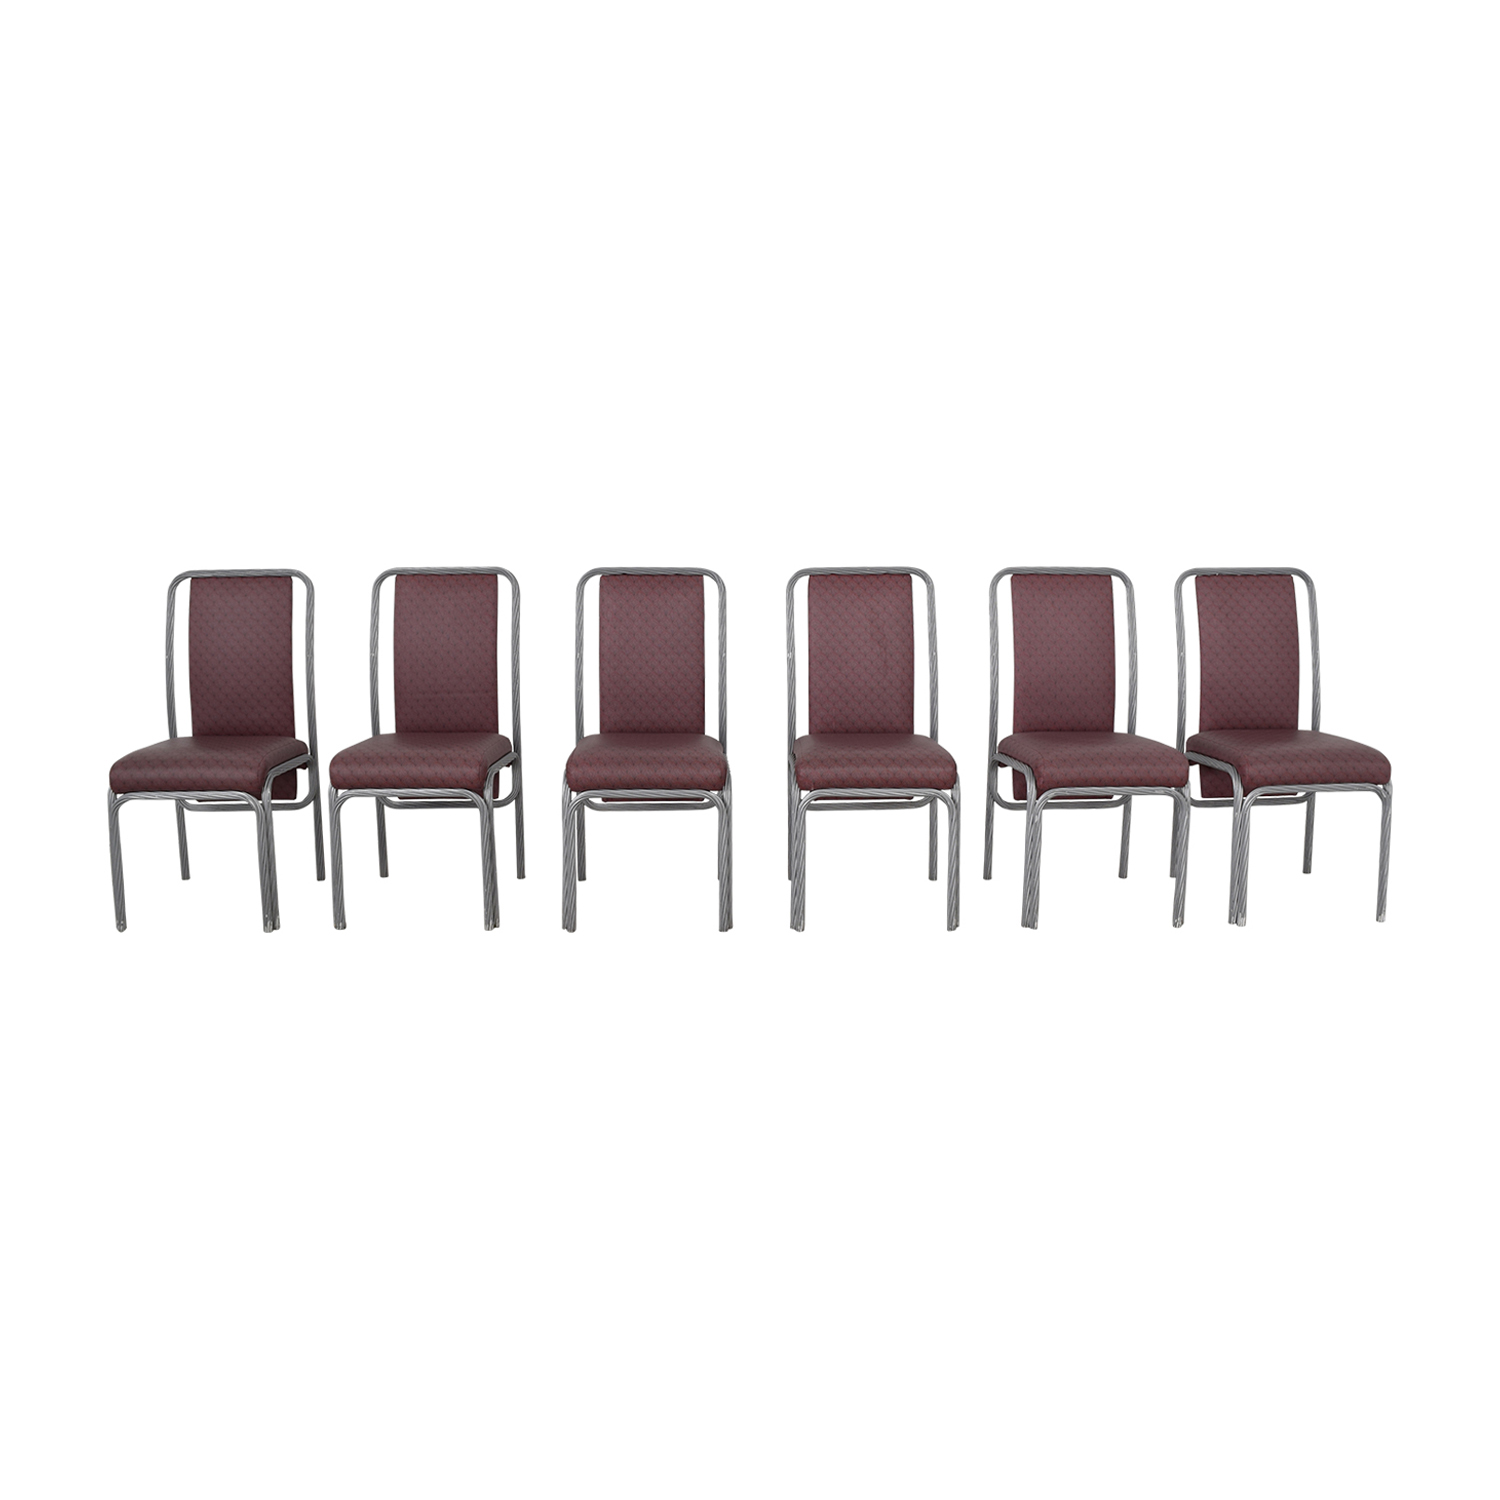 Precision Furniture Precision Furniture Purple Dinette Chairs price